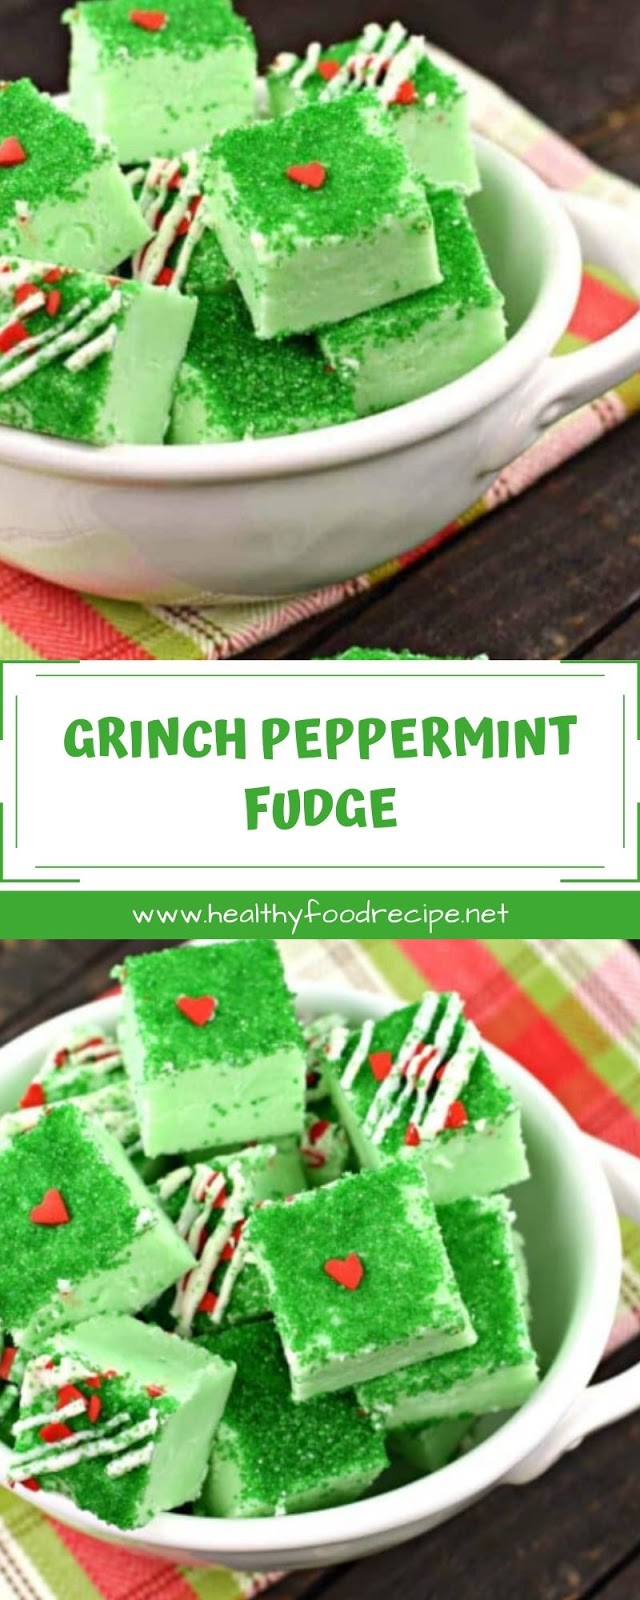 GRINCH PEPPERMINT FUDGE